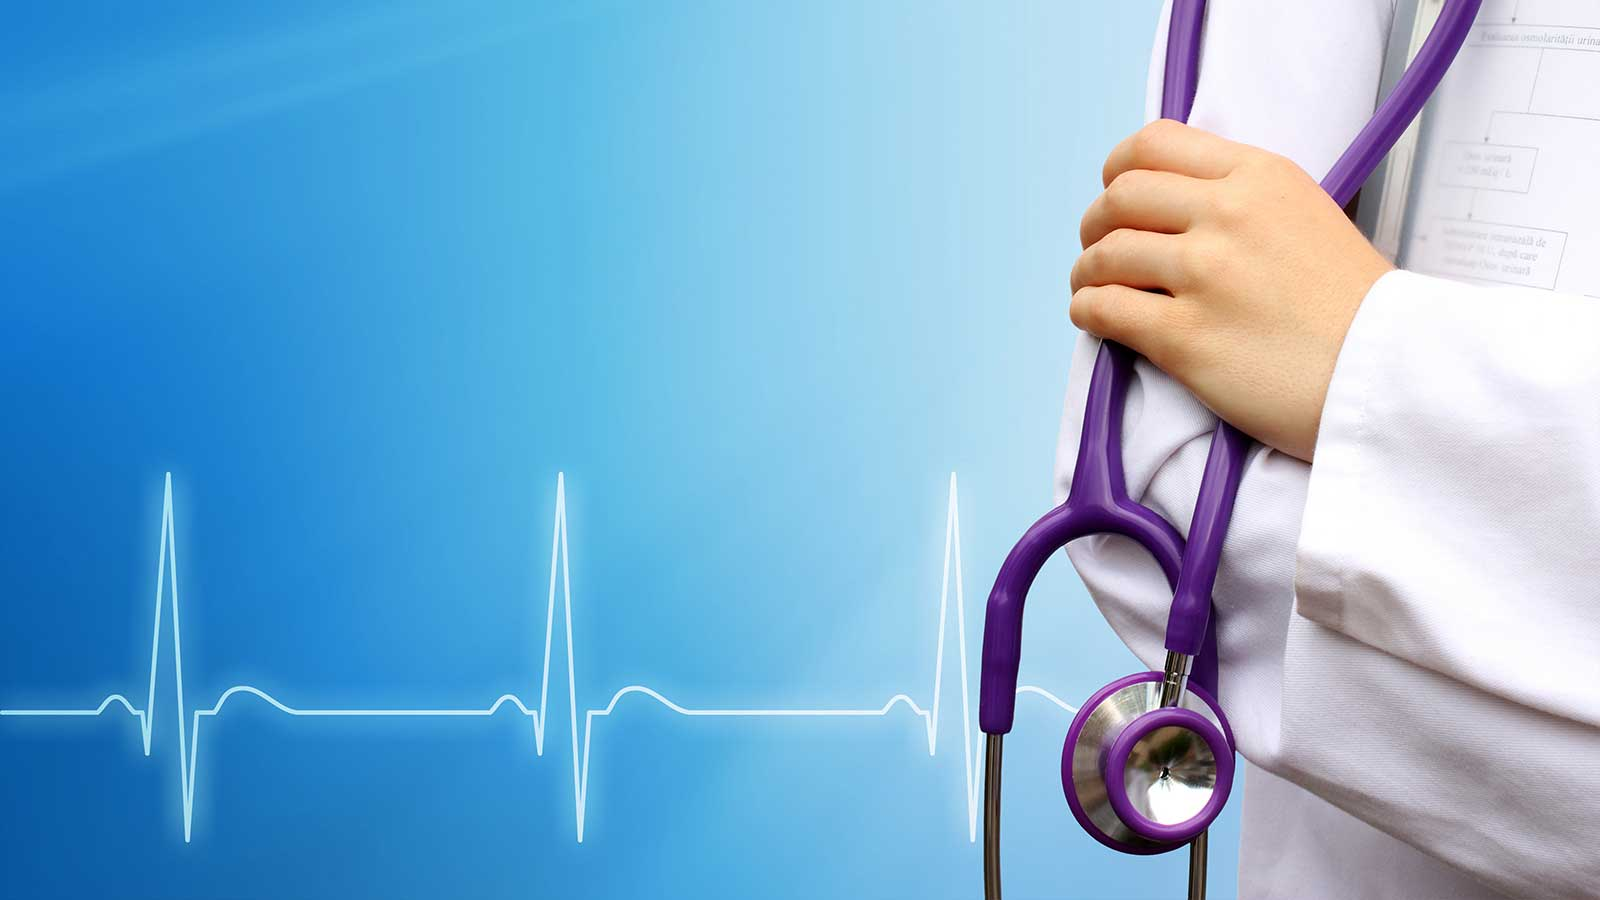 Hd Medical Wallpapers Top Free Hd Medical Backgrounds